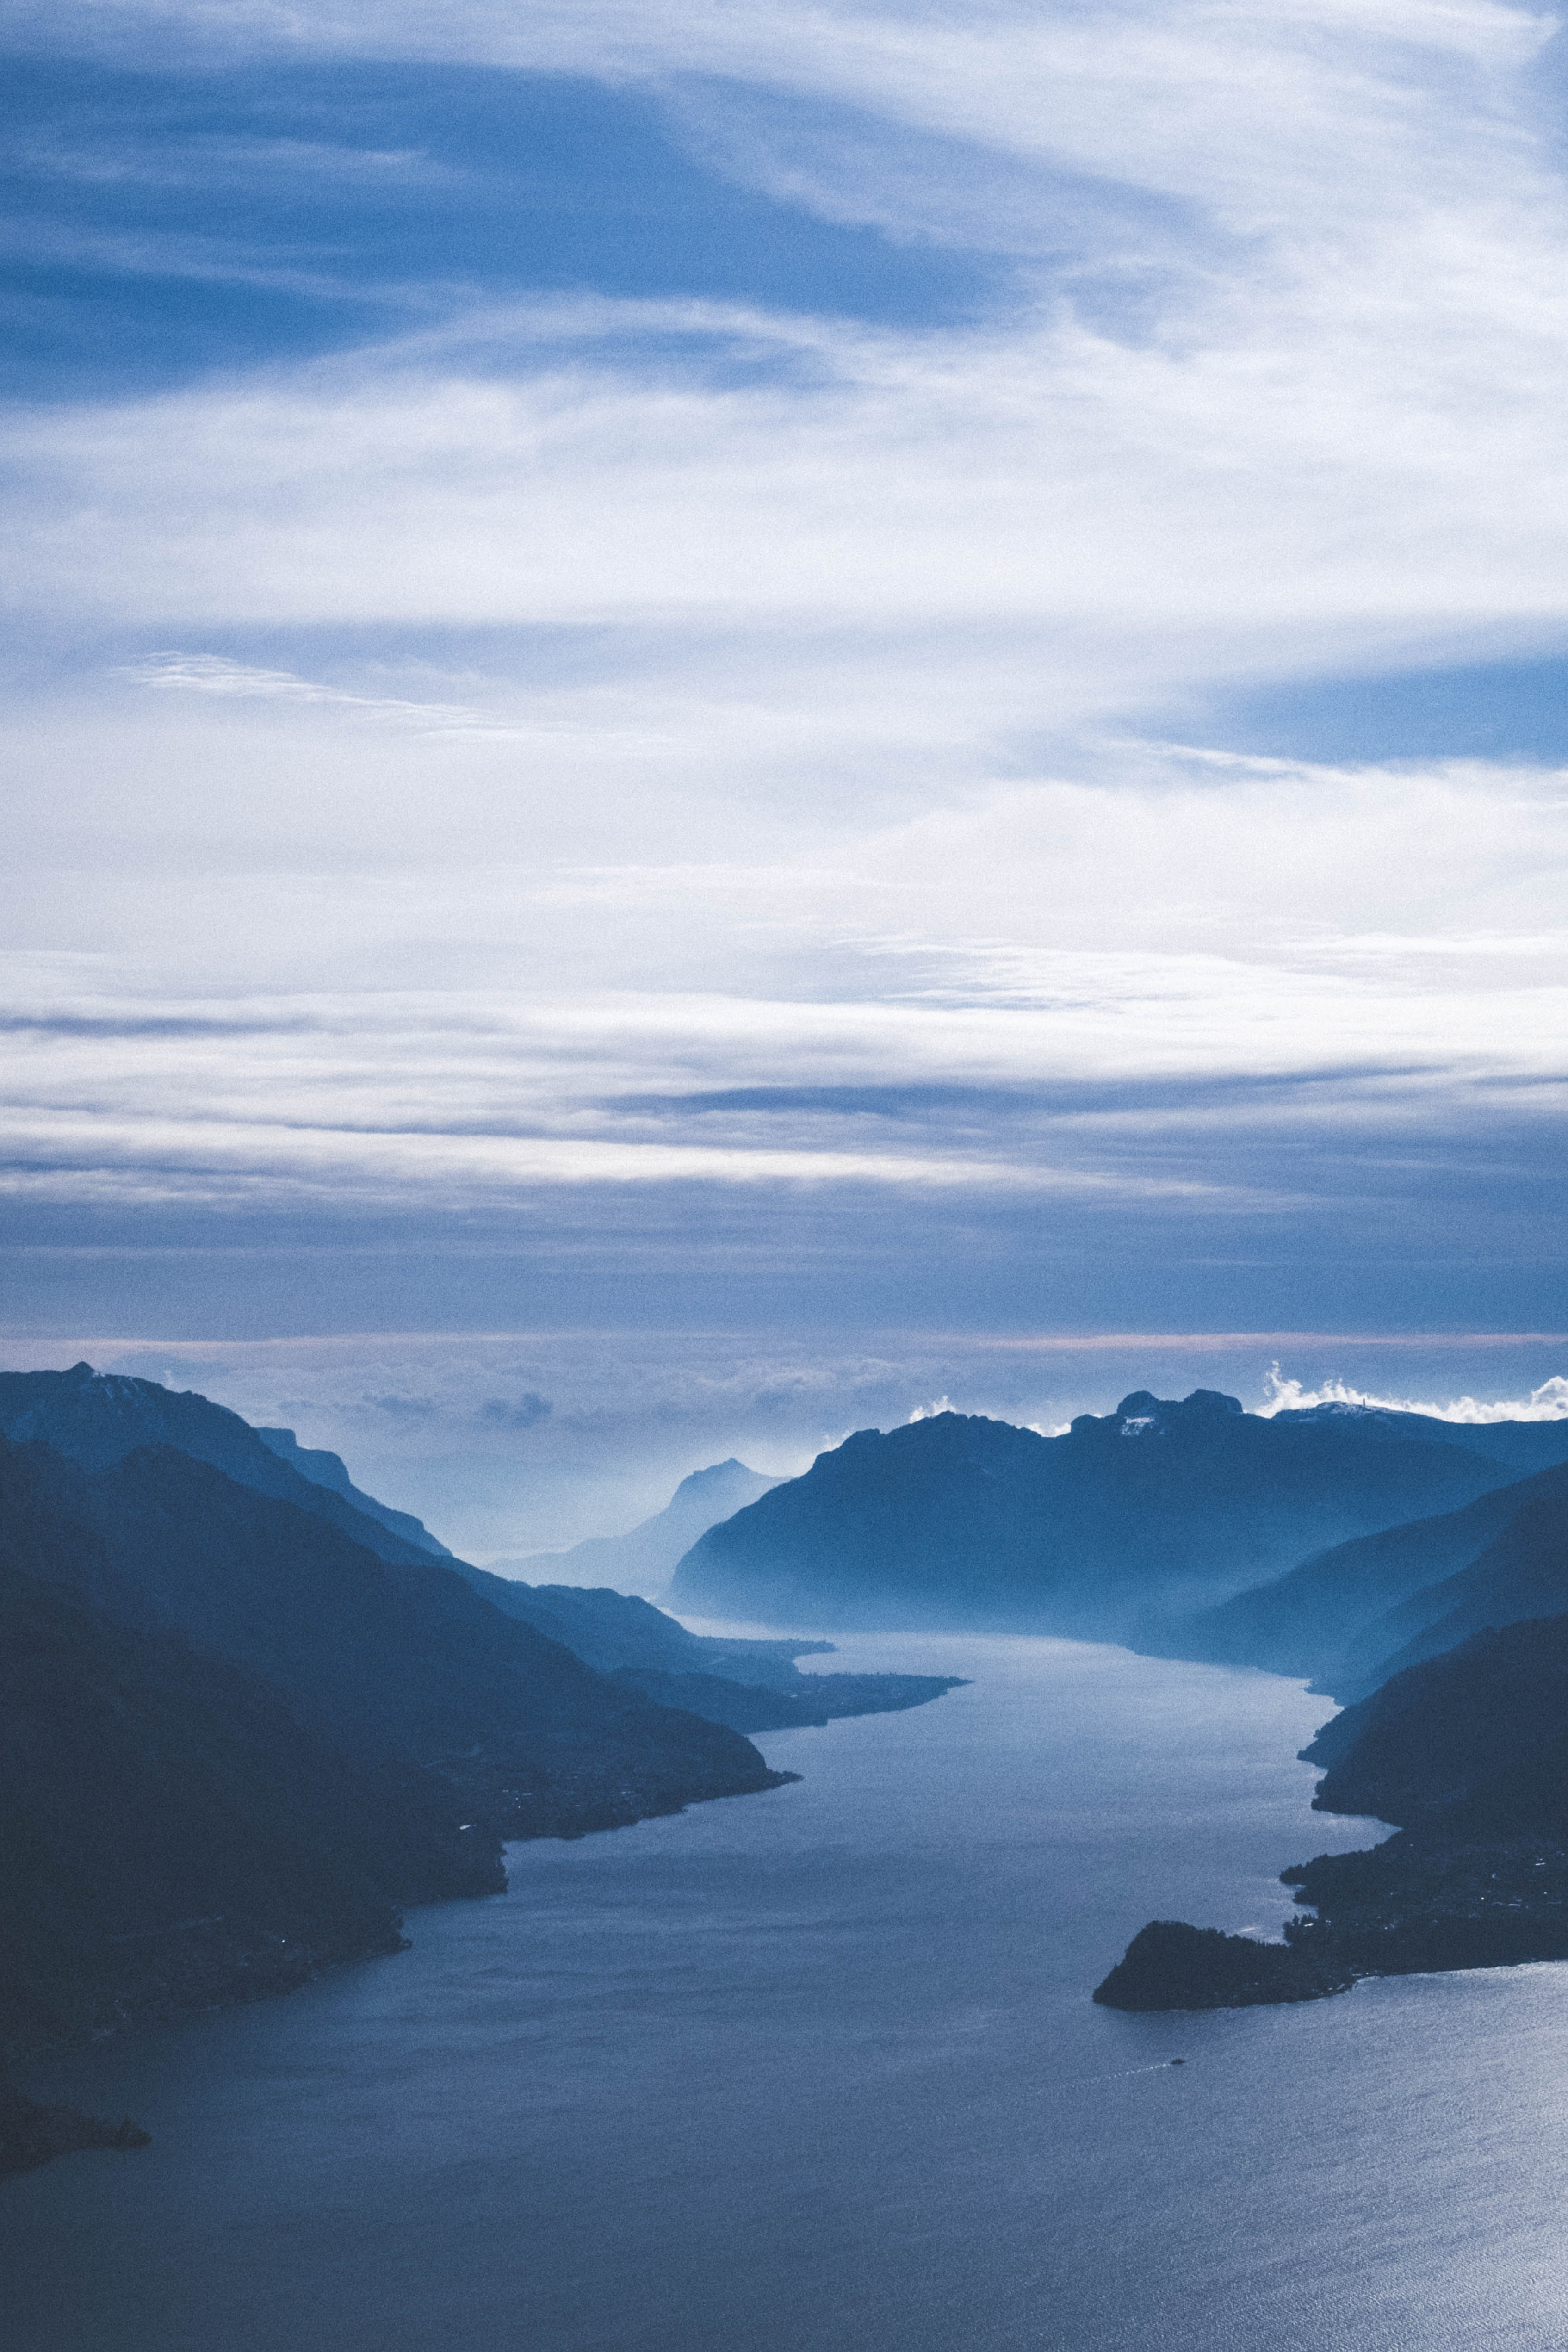 bird's eye view of body of water and mountains